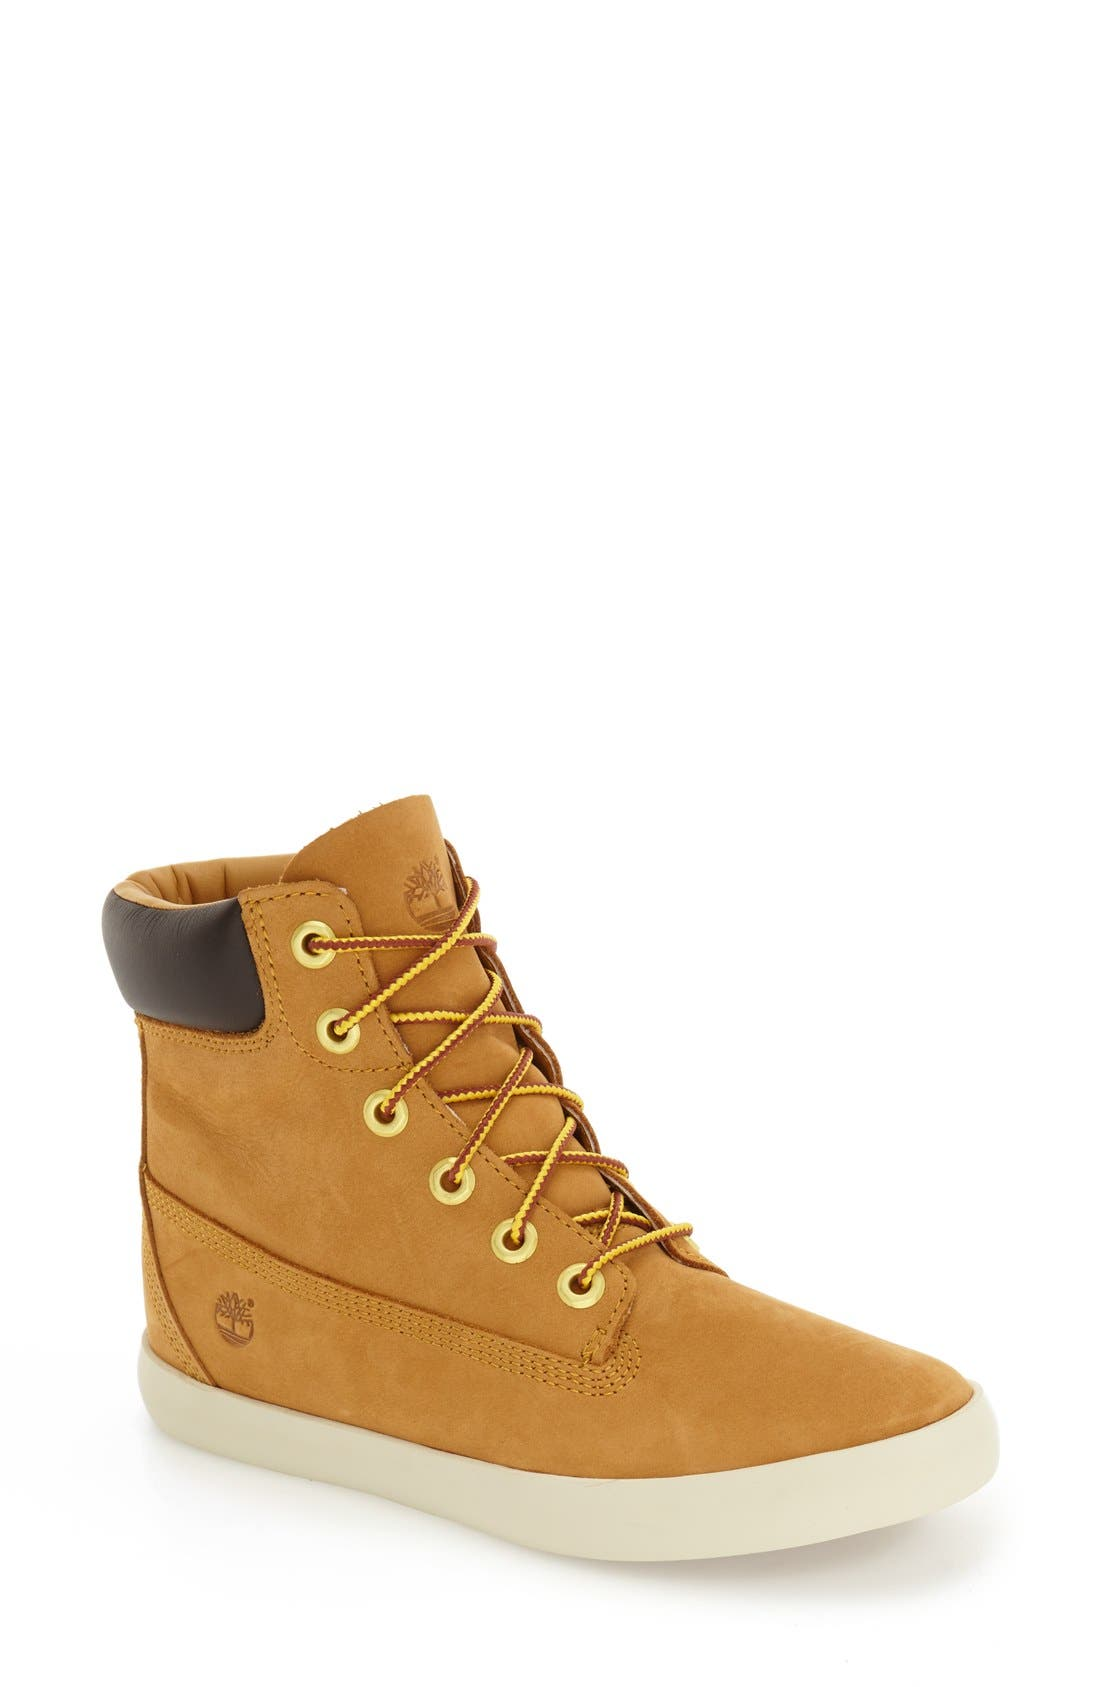 TIMBERLAND Flannery Hidden Wedge Lug Boot